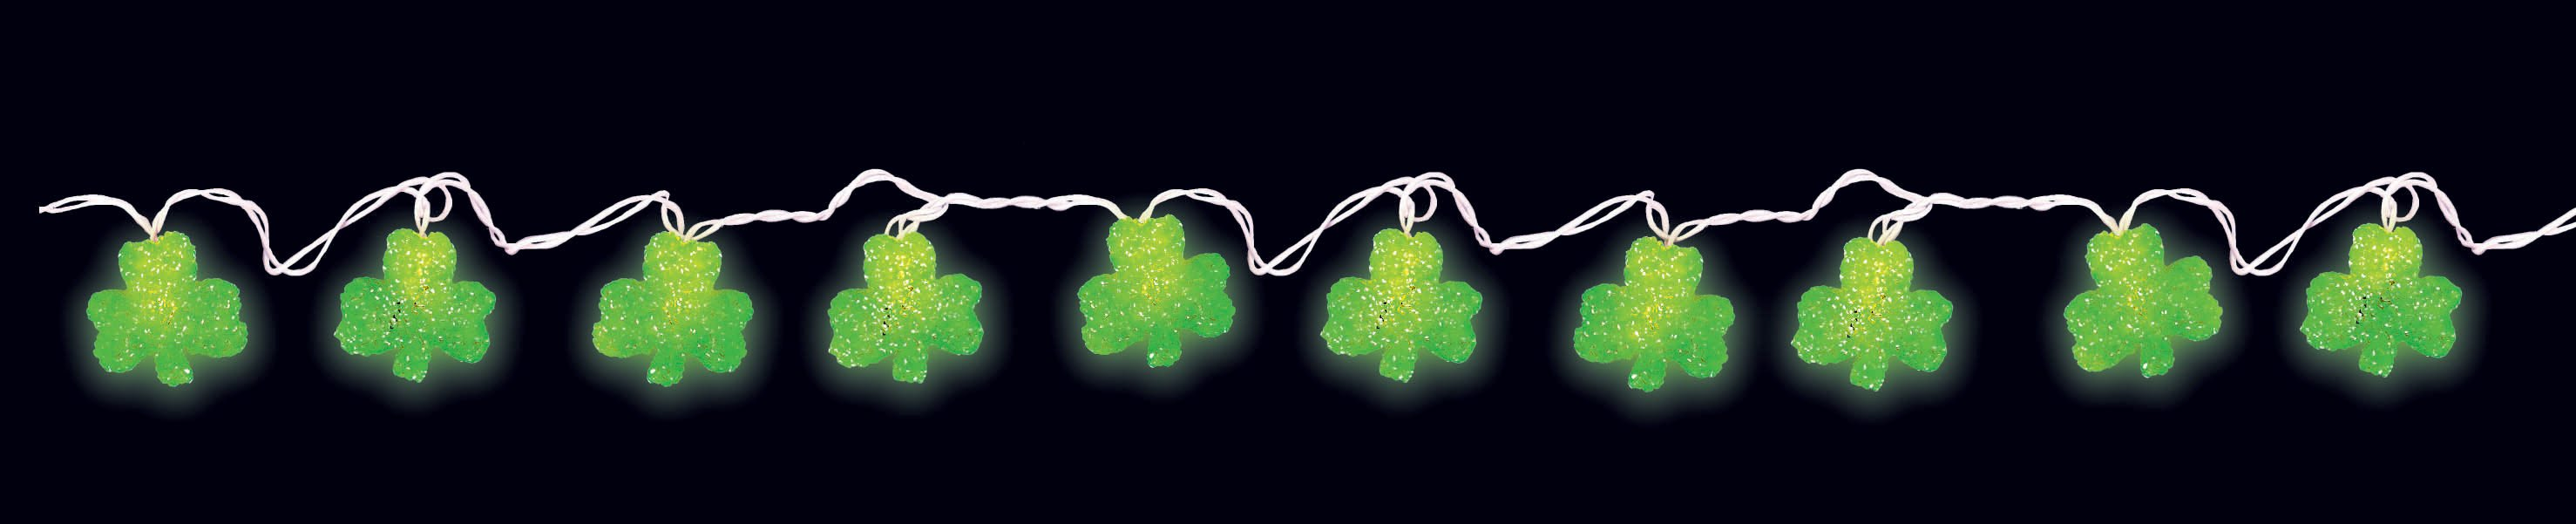 8' Shamrock Light Set (10 lights)